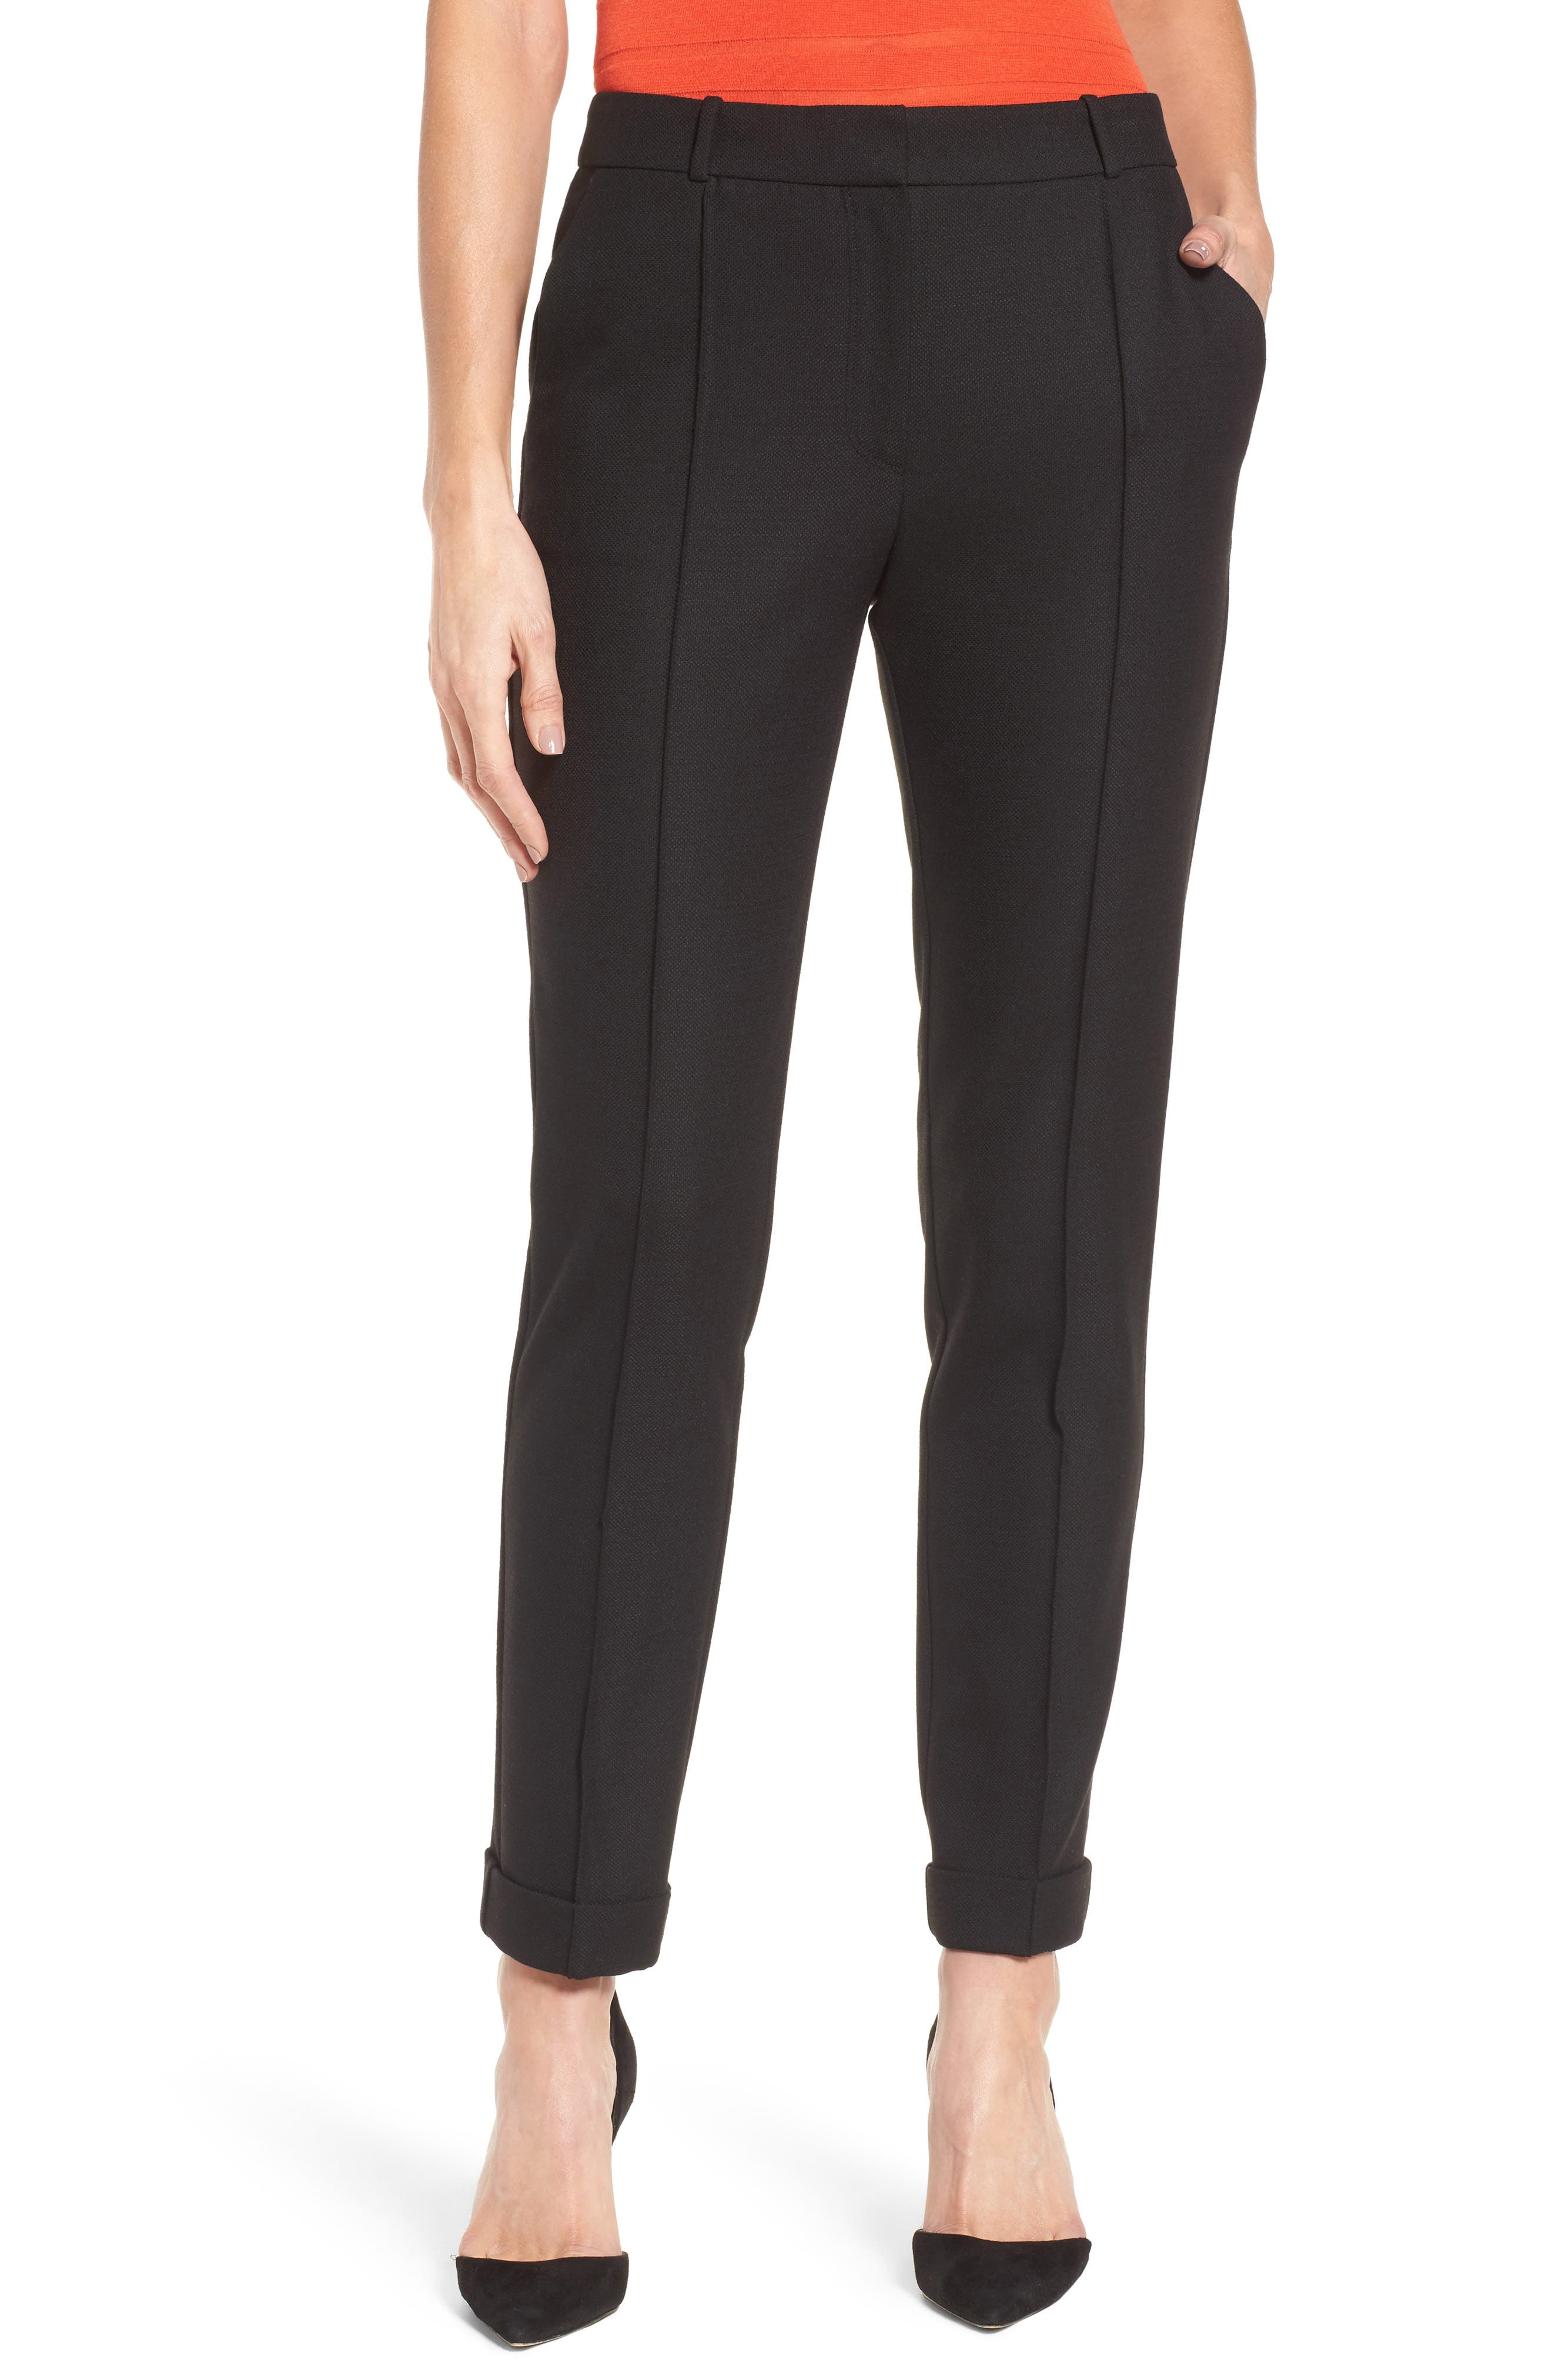 BOSS Acrila Straight Leg Suiting Trousers (Nordstrom Exclusive) (Petite)